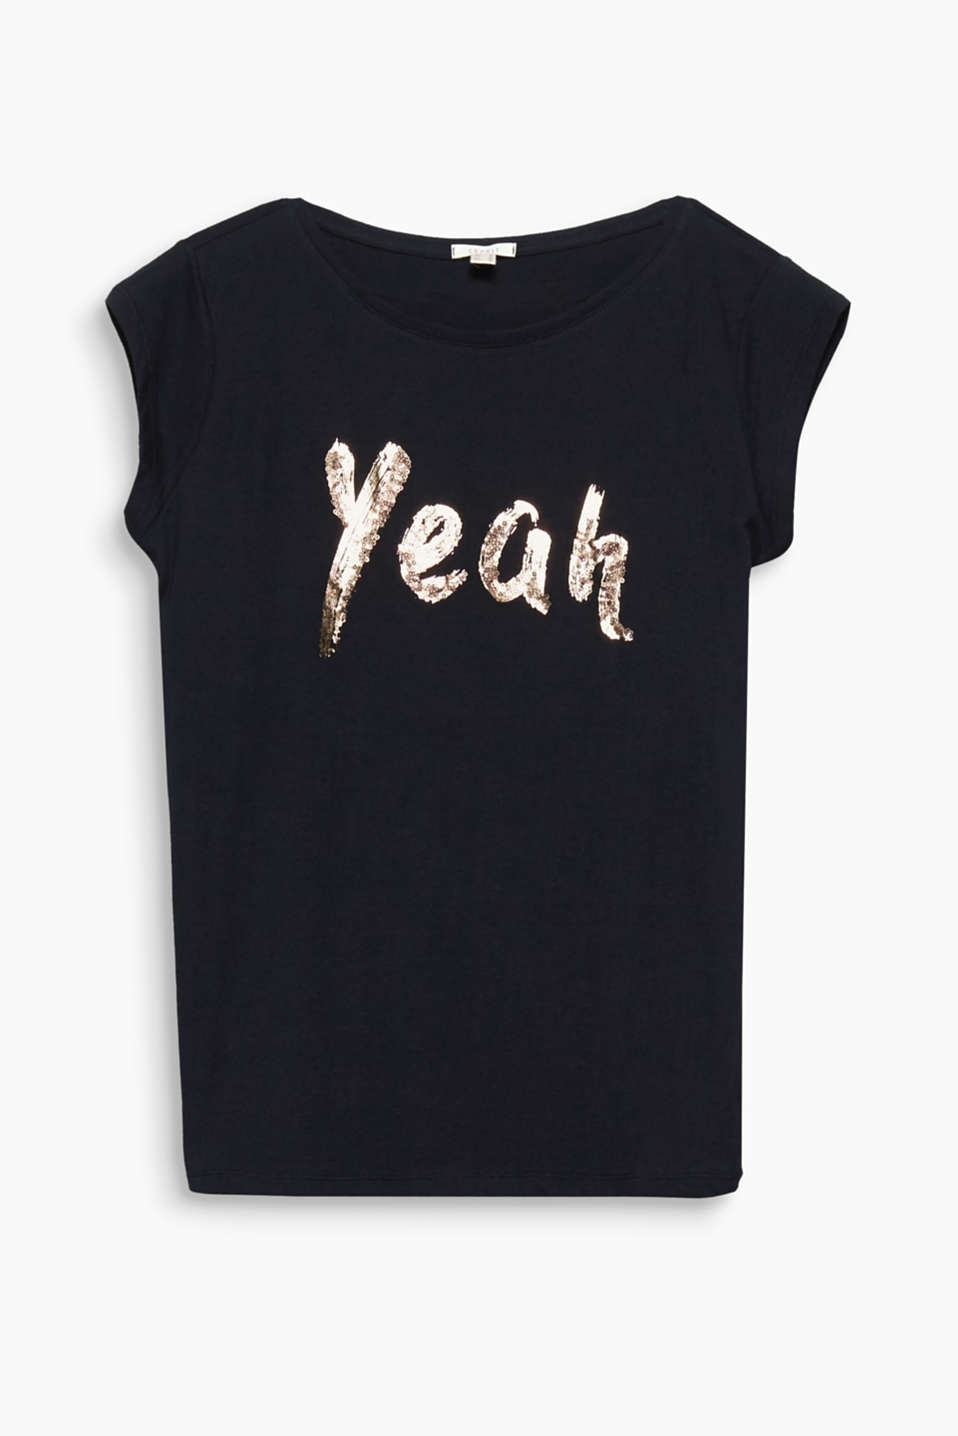 Oh yeah! Ved denne bomulds-T-shirt sørger glansprintet med påsyede pailletter for glam-rock-style!